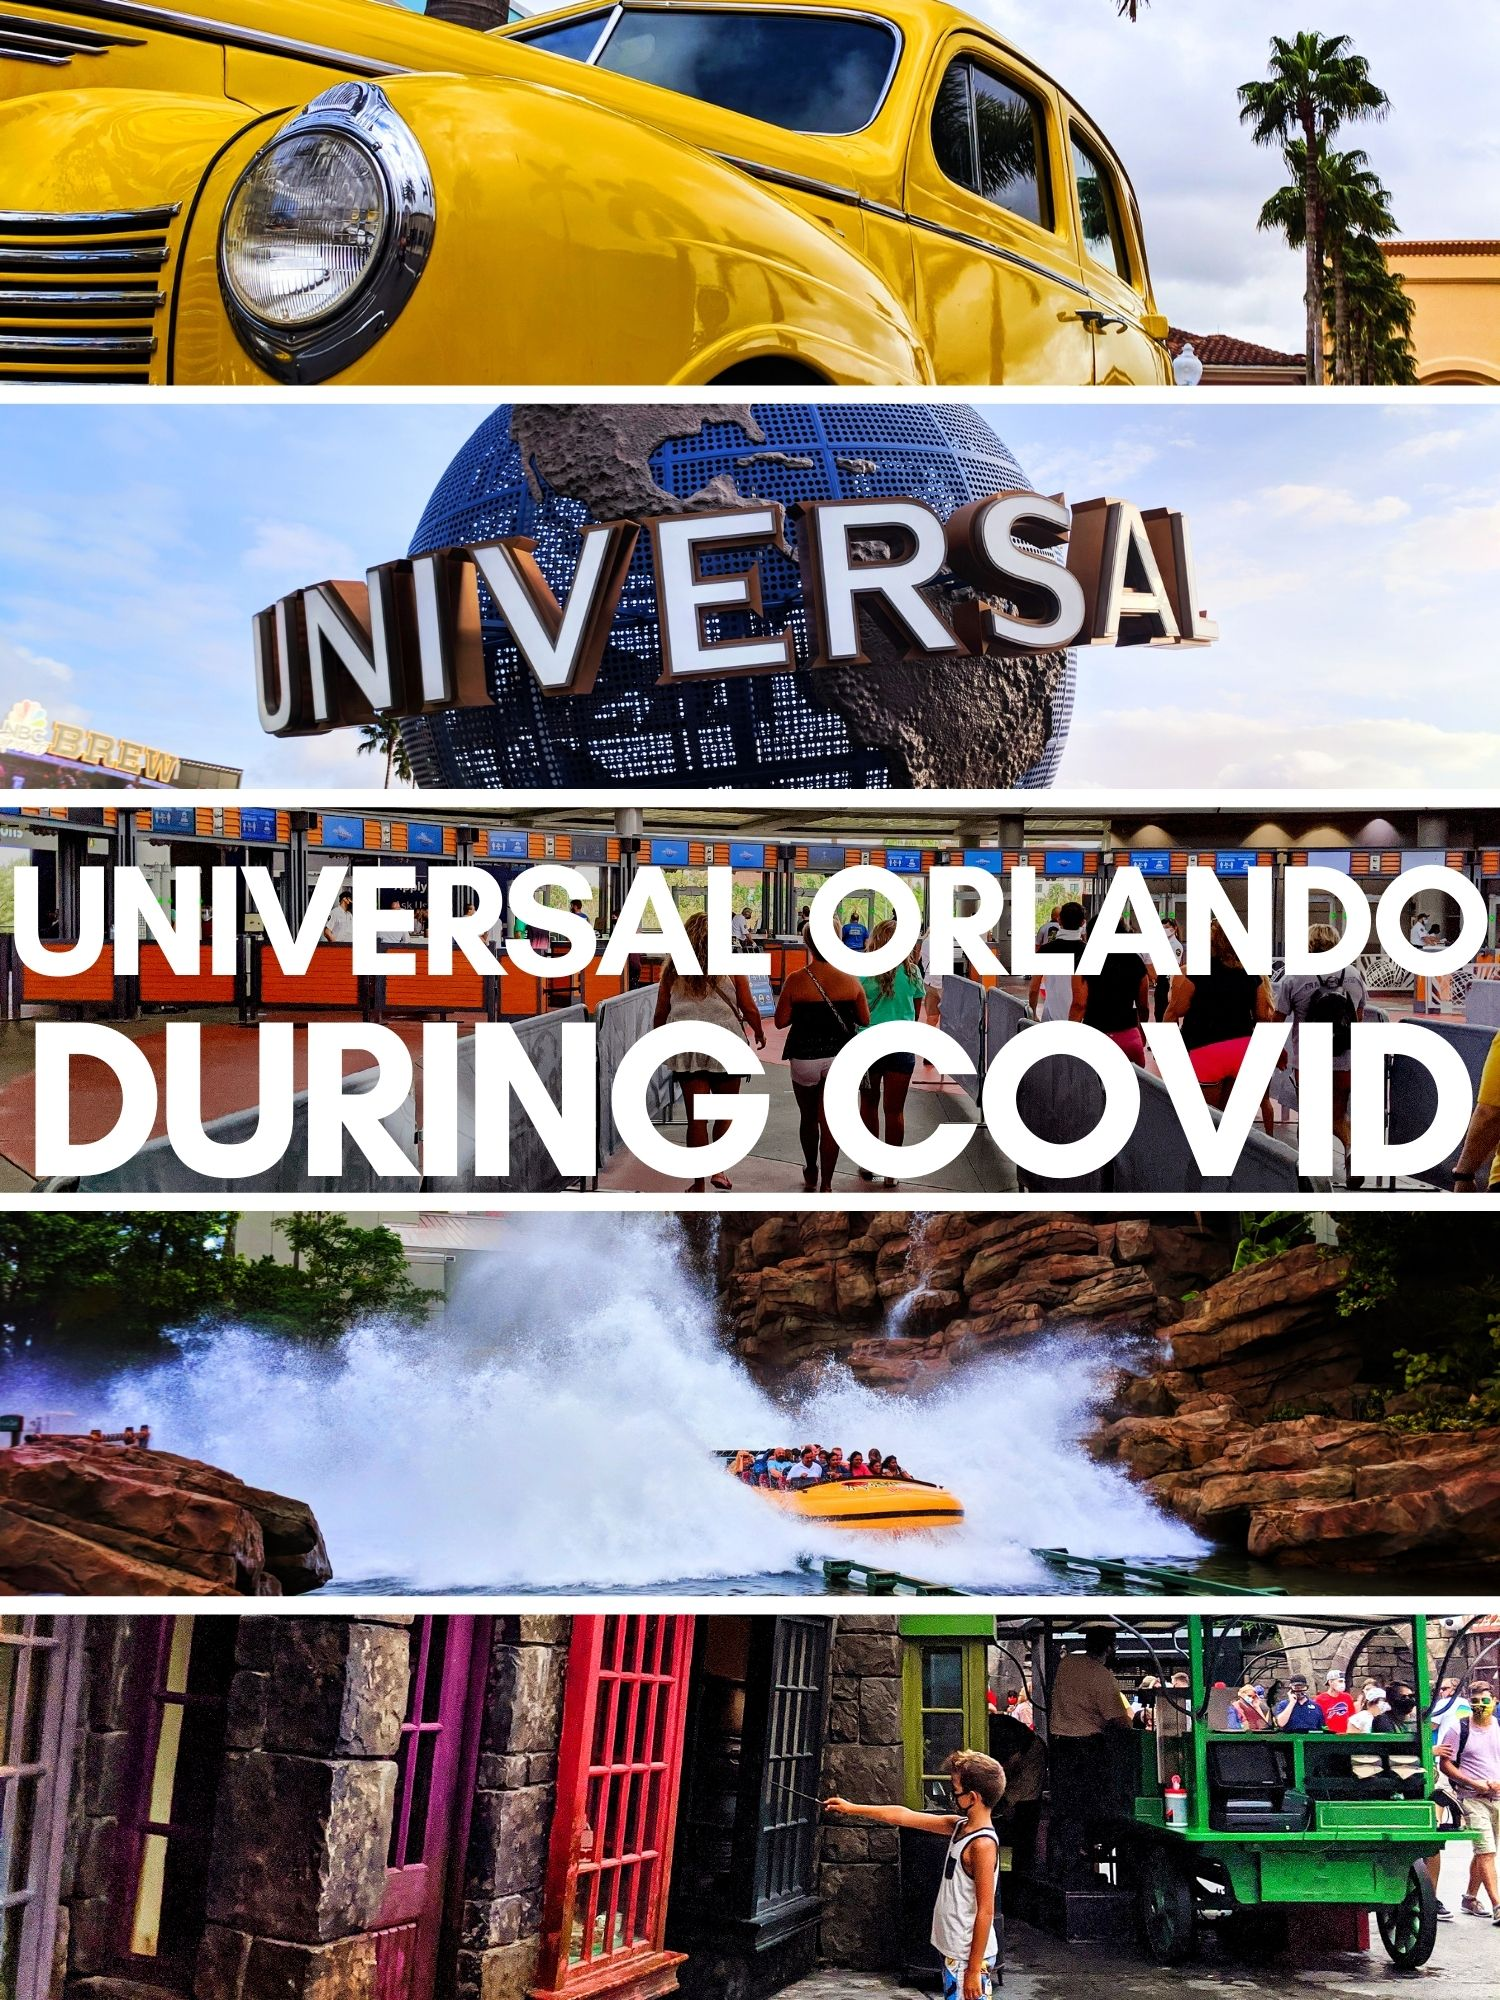 Visiting Universal Orlando during COVID is different. Health and safety precautions as well as low capacity and smaller crowds make visiting Universal during Coronavirus easy.